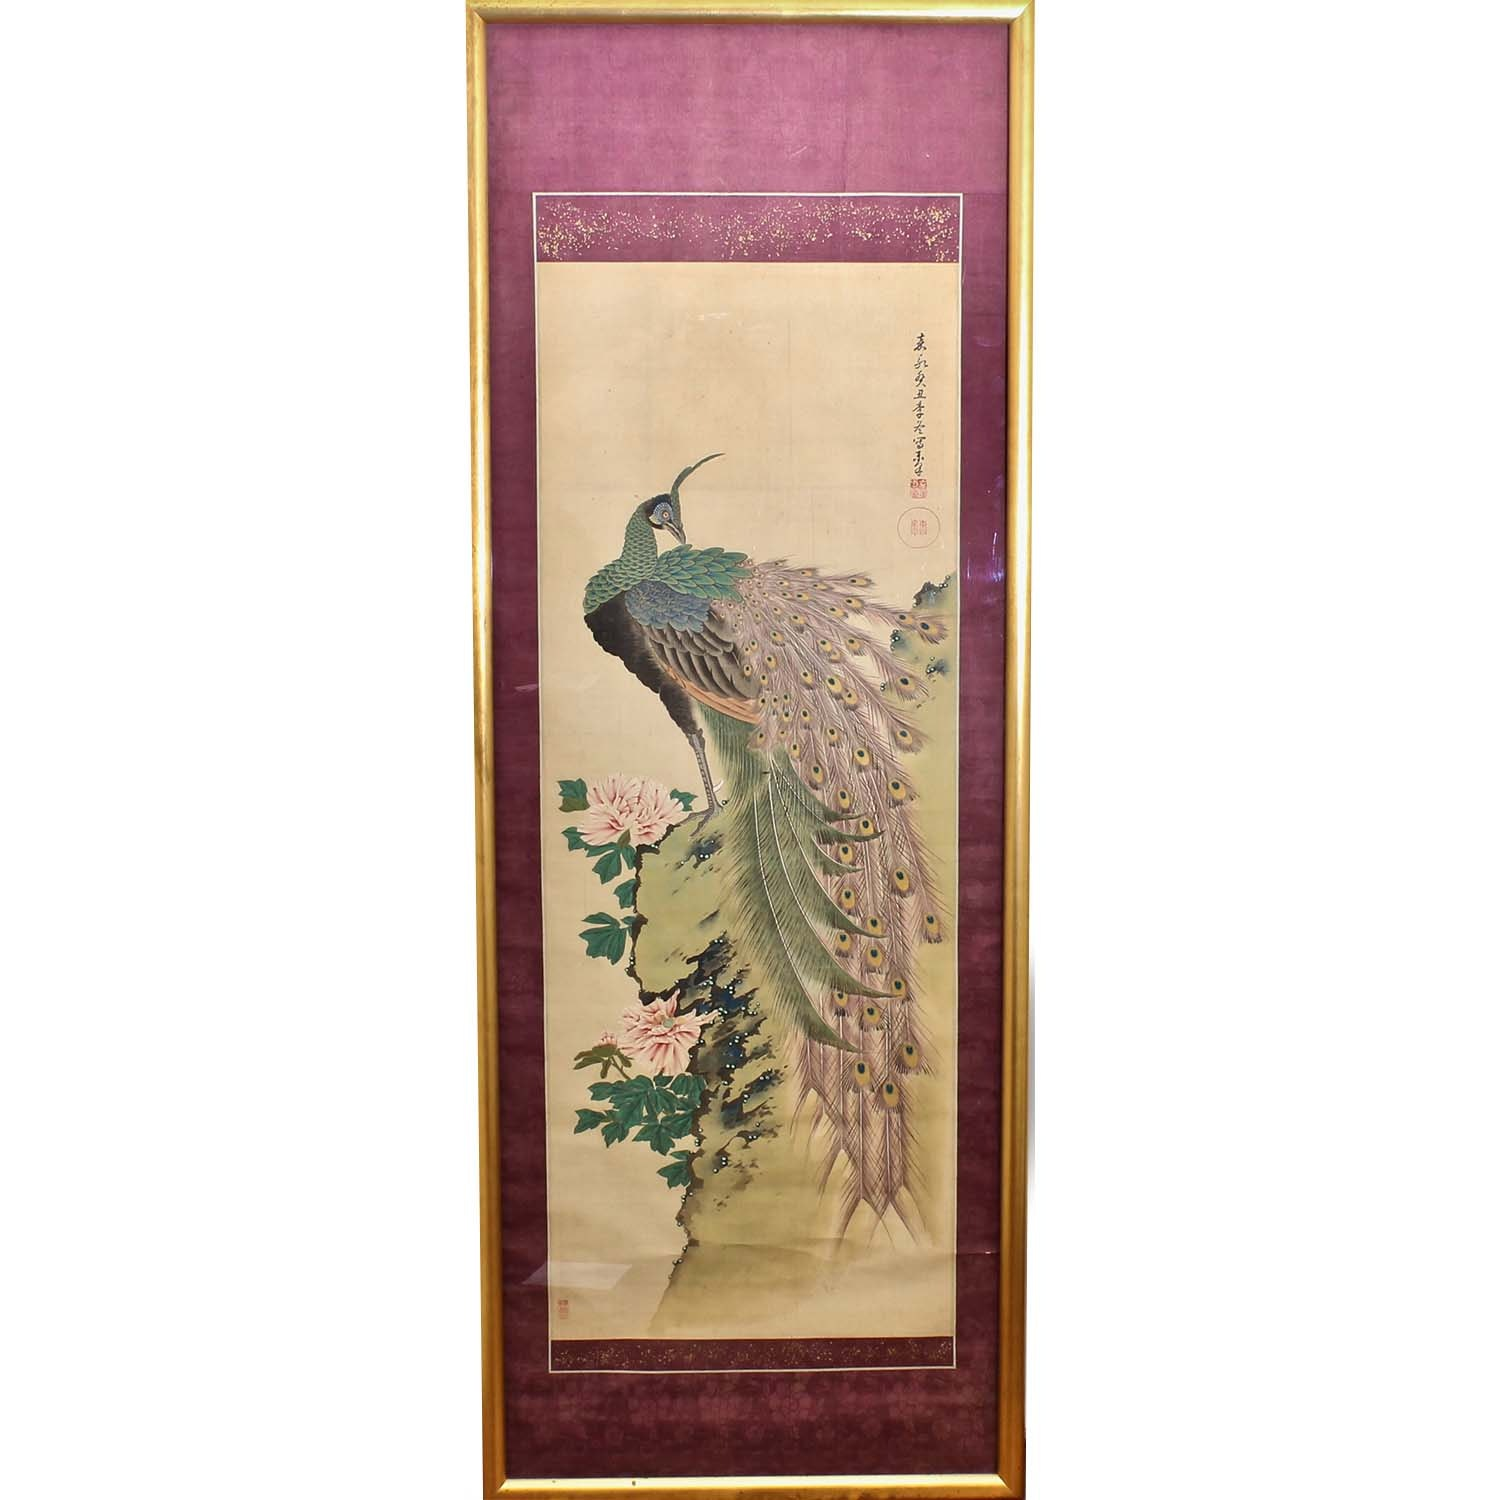 Chinese Printed Hanging Scroll of a Peacock